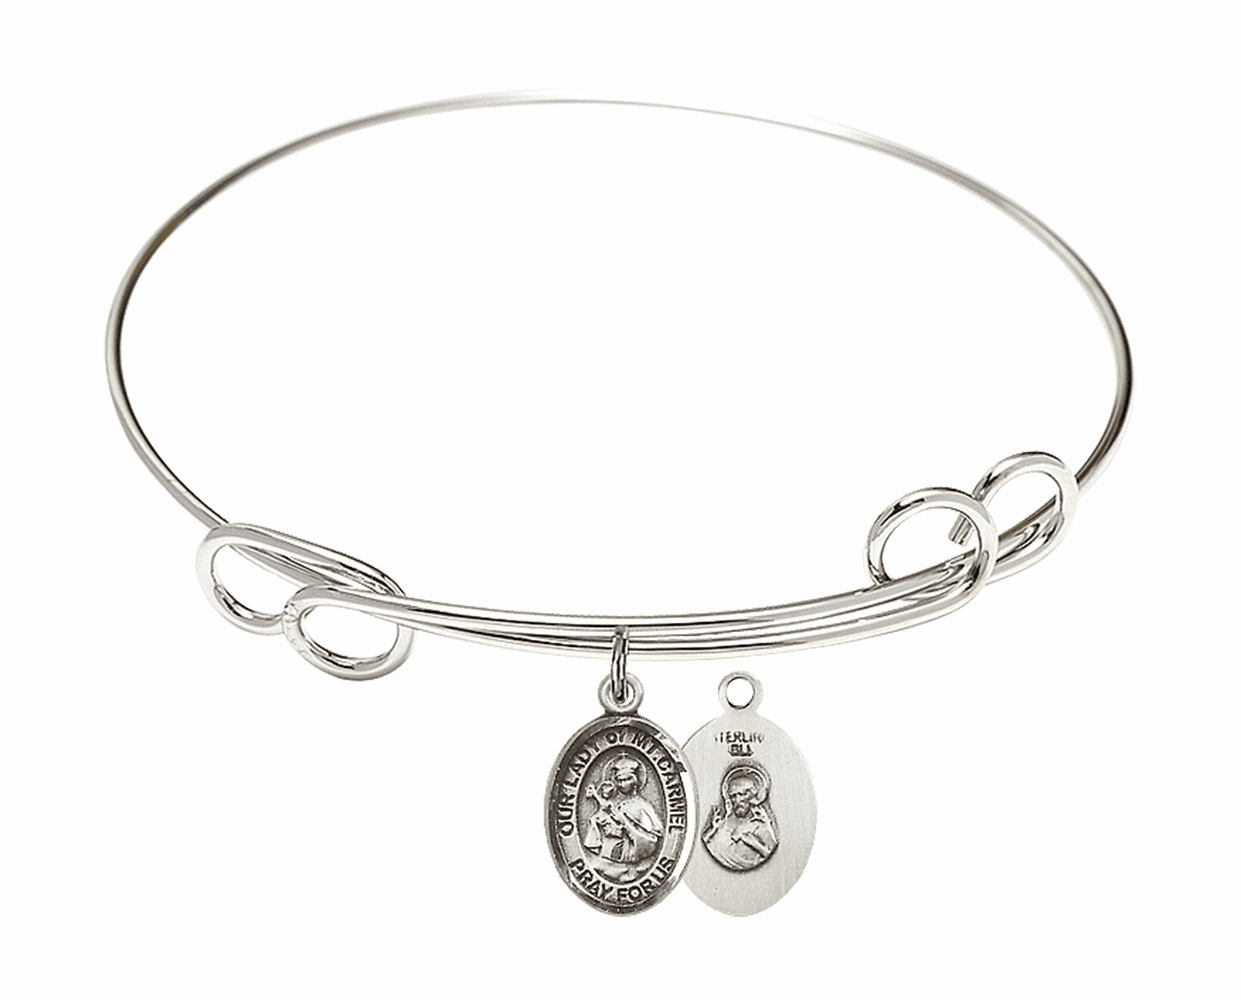 Our Lady of Mount Carmel Rosary Bracelets and Charm Bangles